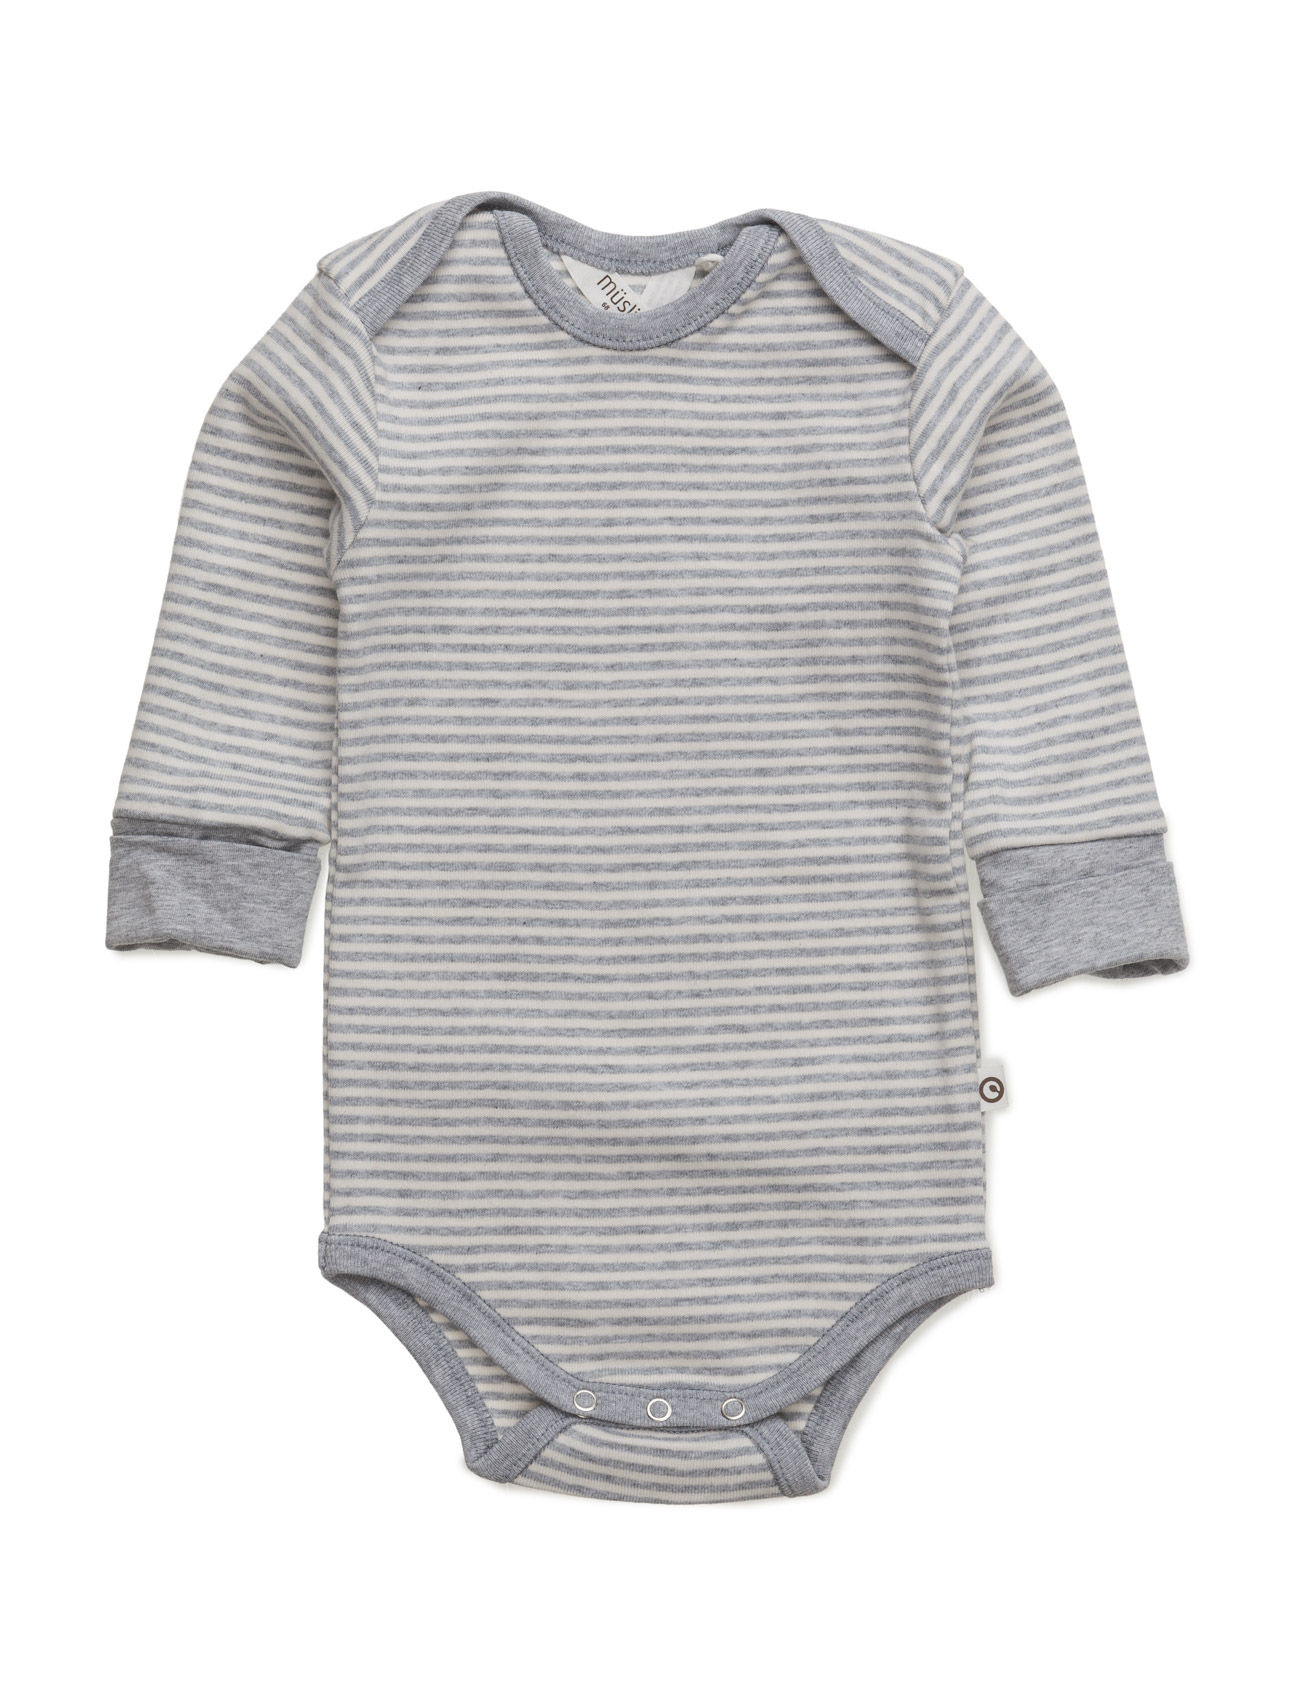 mã¼sli by green cotton Stripe l/sl body på boozt.com dk